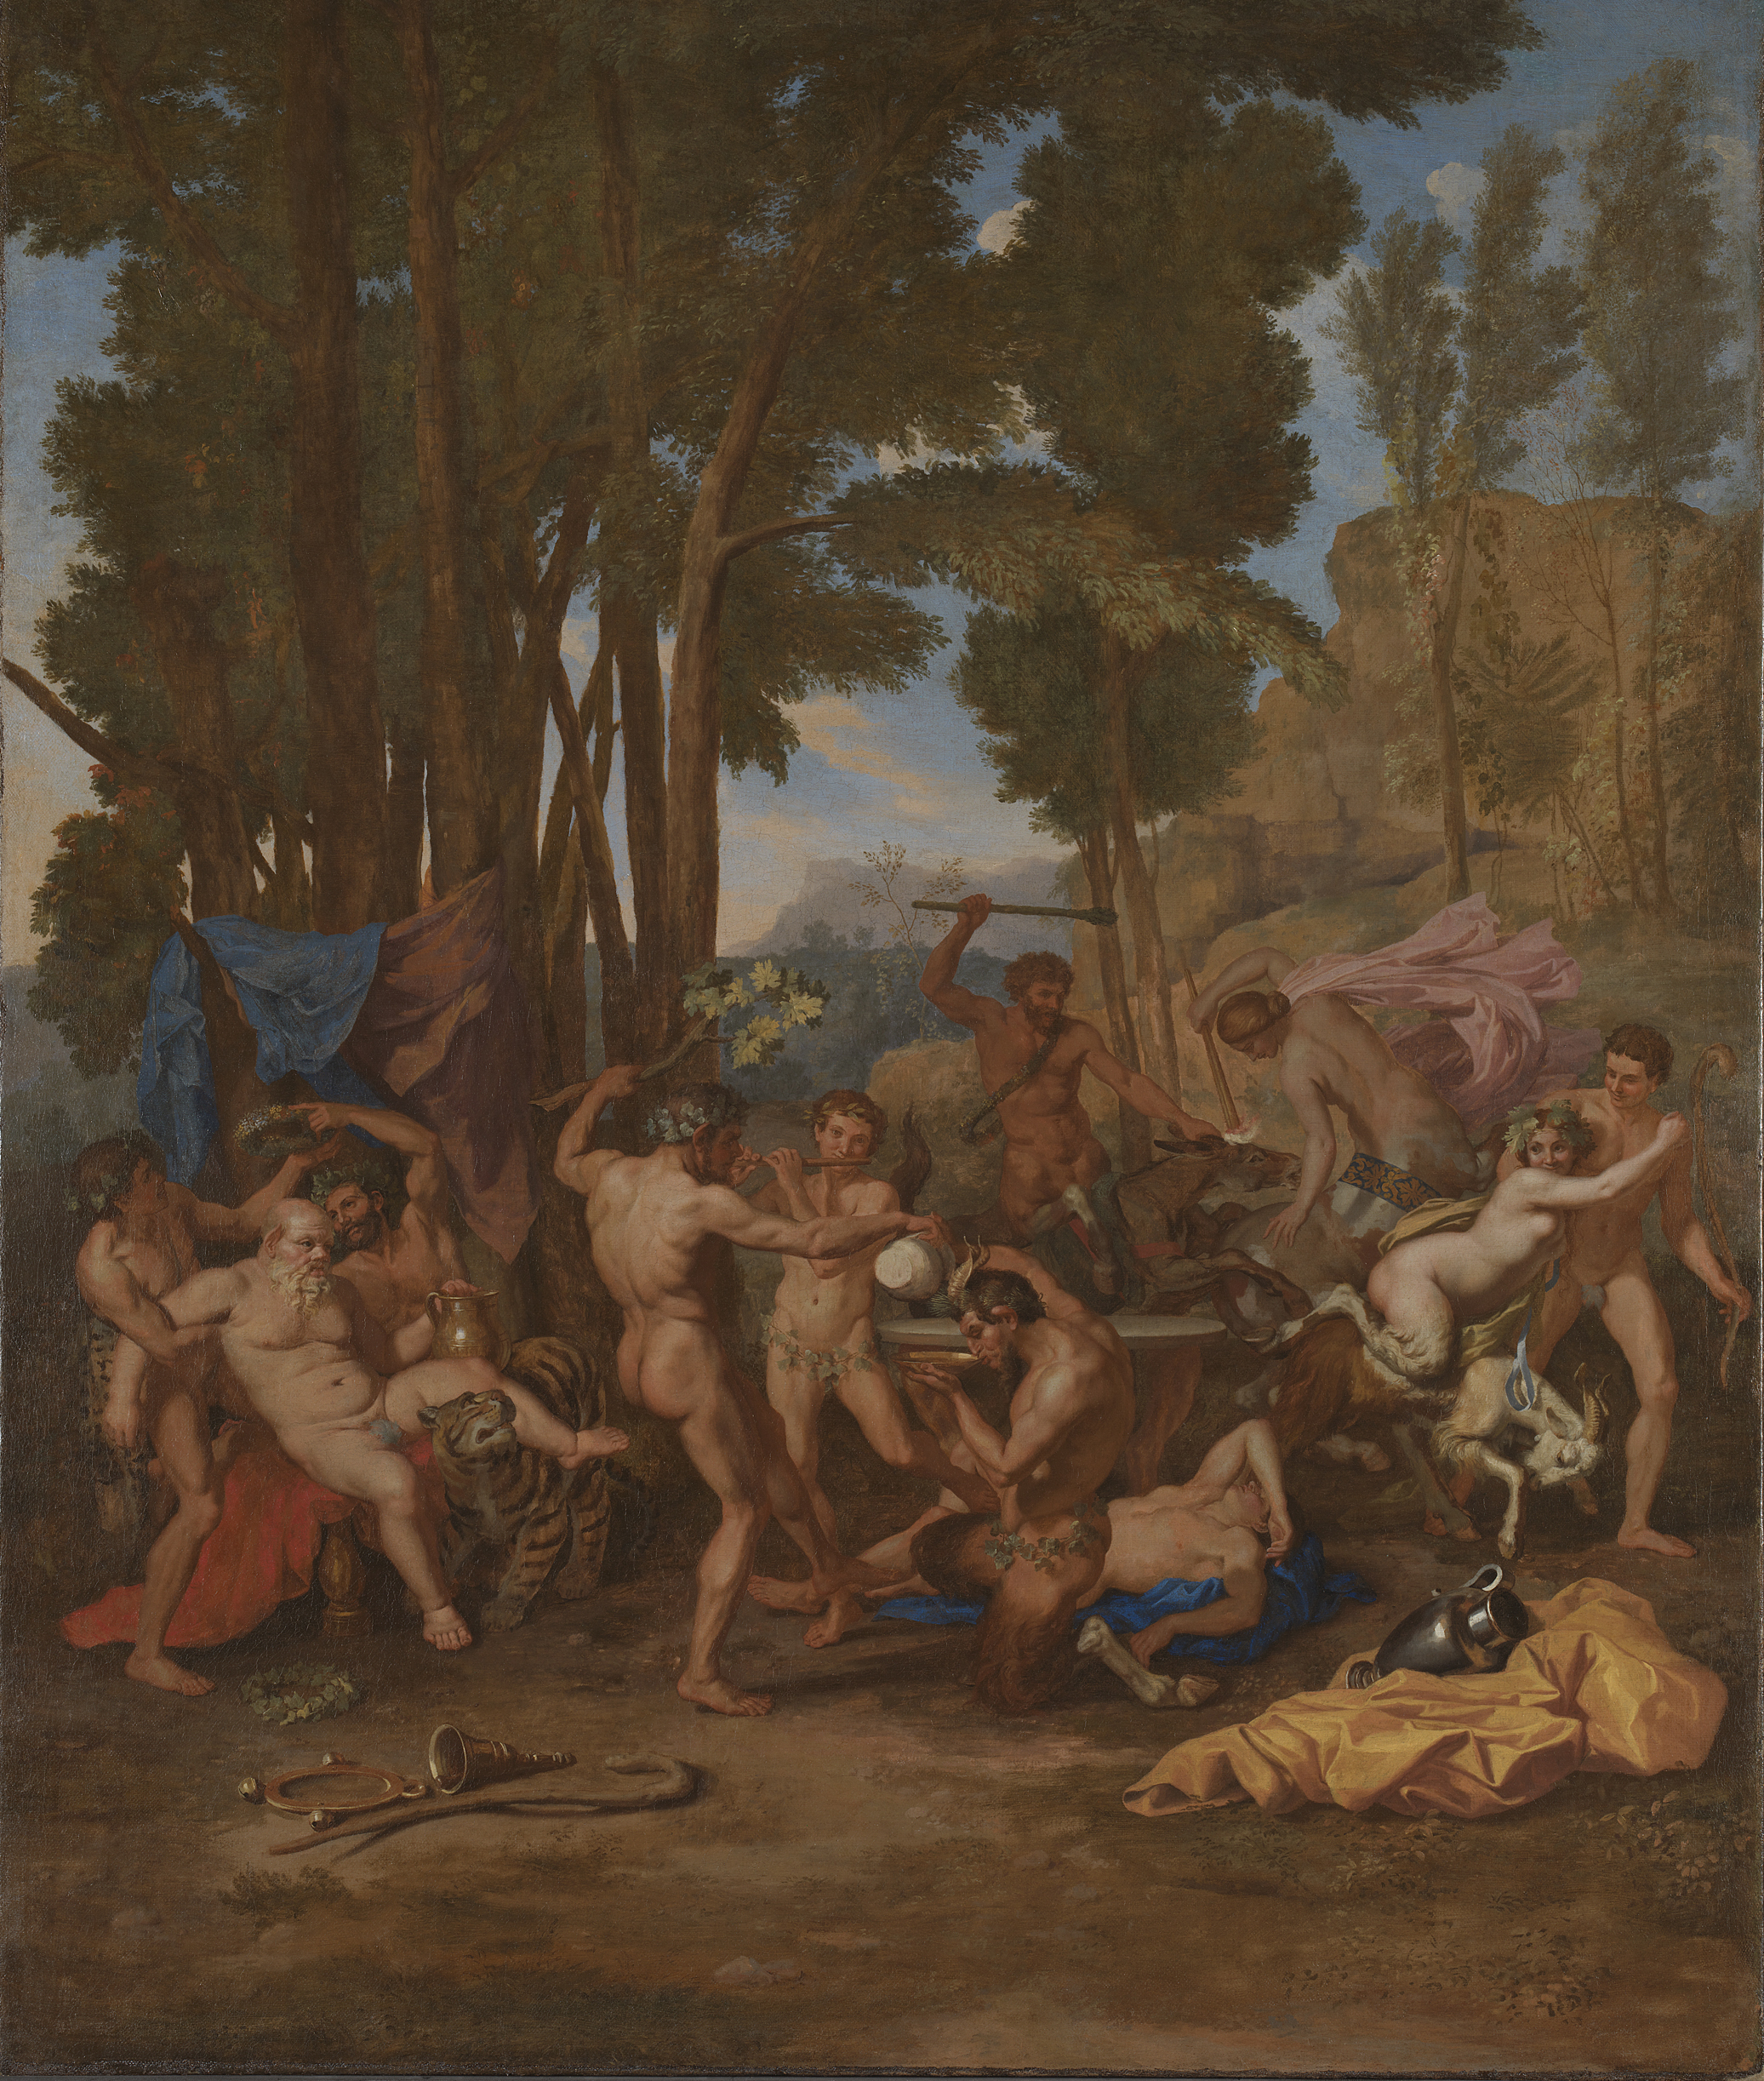 'The Triumph of Silenus', canvas measuring 142.9 by 120.5 centimeters, by Nicolas Poussin, made around 1636.